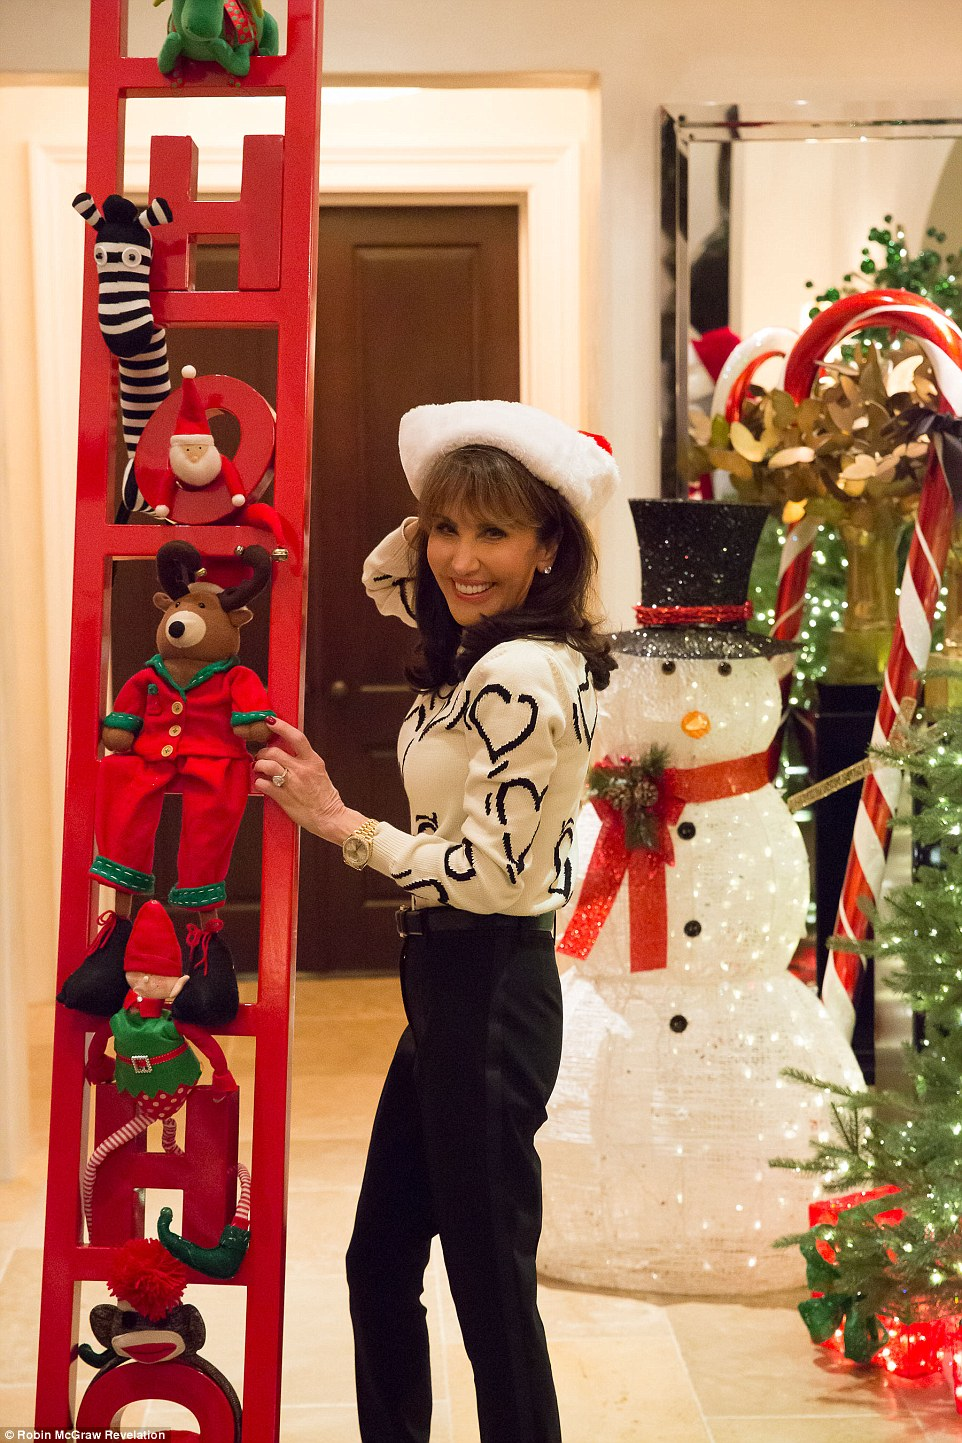 Dr Phil And Robin McGraw Transform Their Home Into Santa